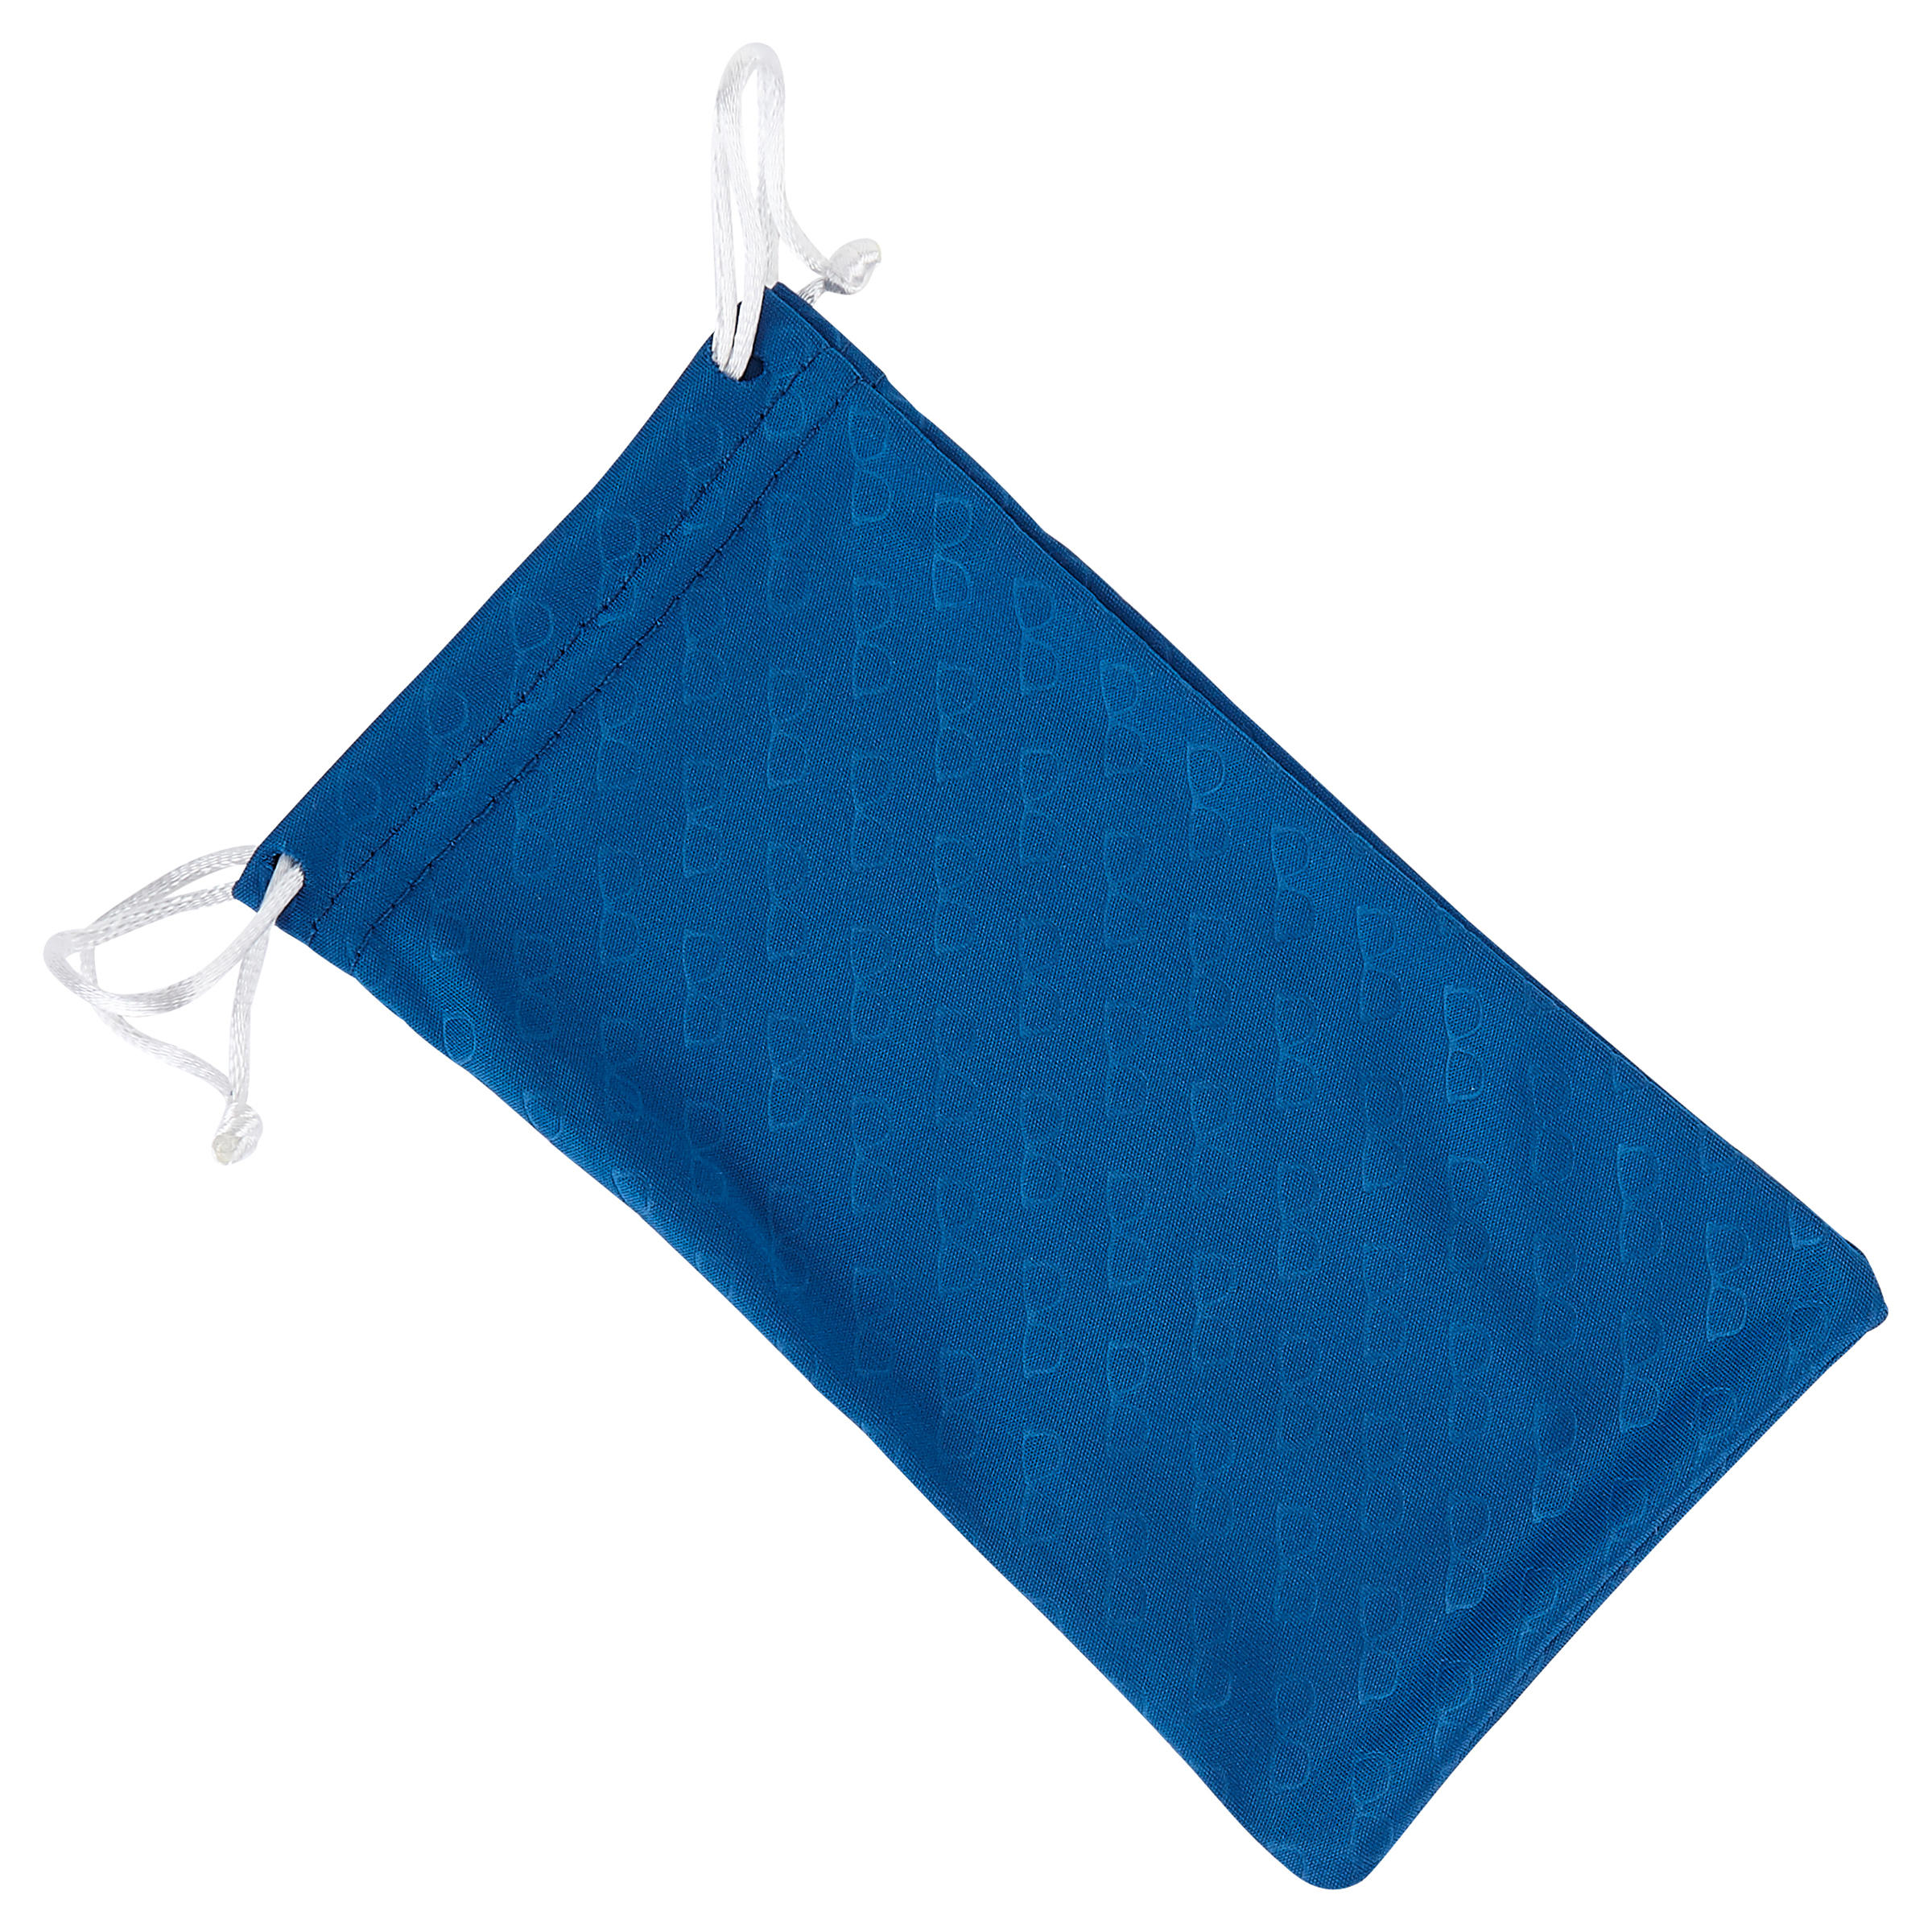 Microfibre Glass Cleaning Bag MH ACC 120 - Blue